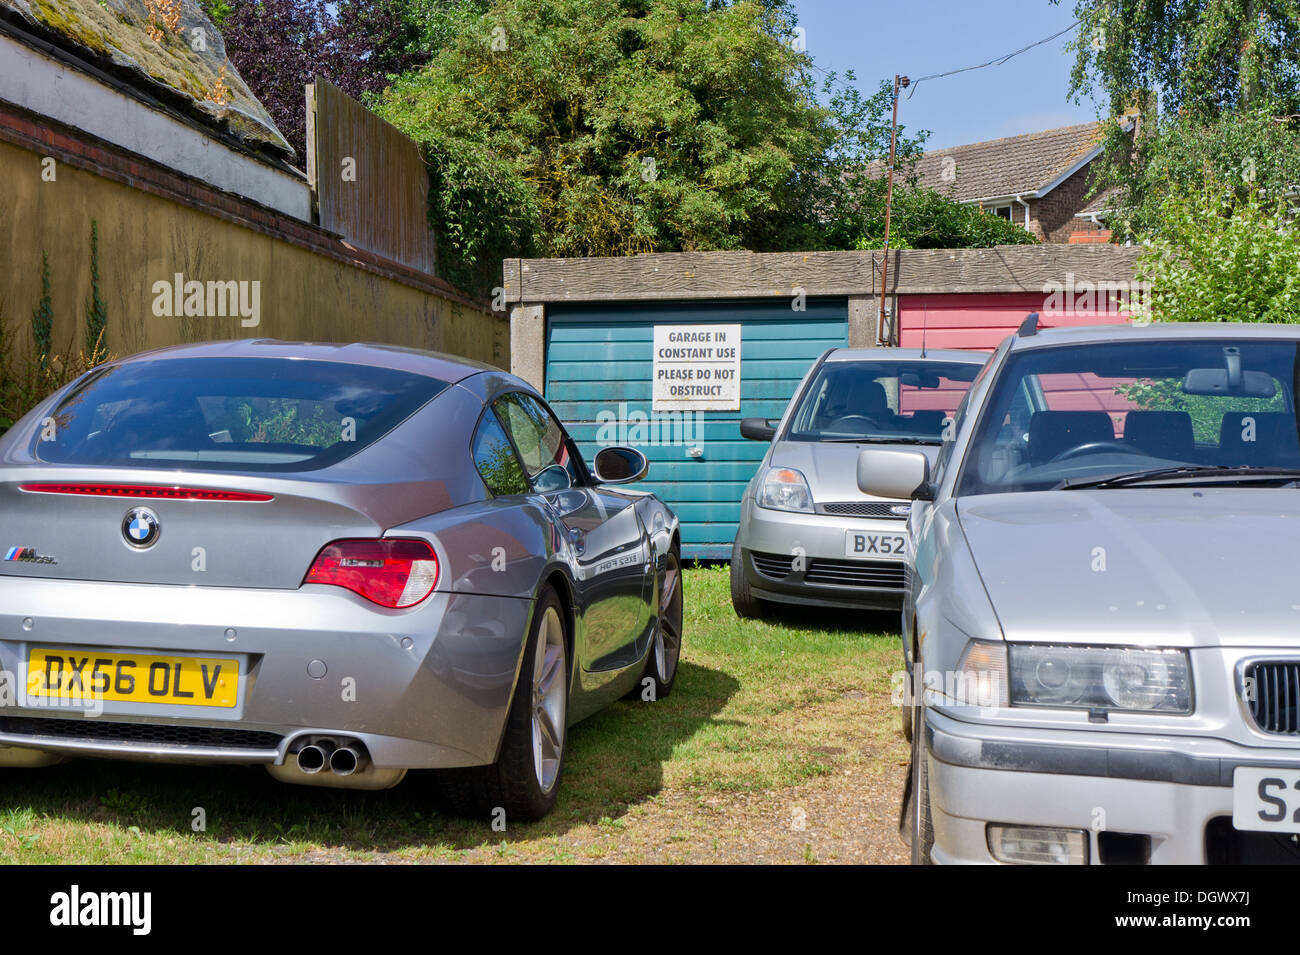 Garage Bmw Angers In Constant Use Stock Photos In Constant Use Stock Images Alamy